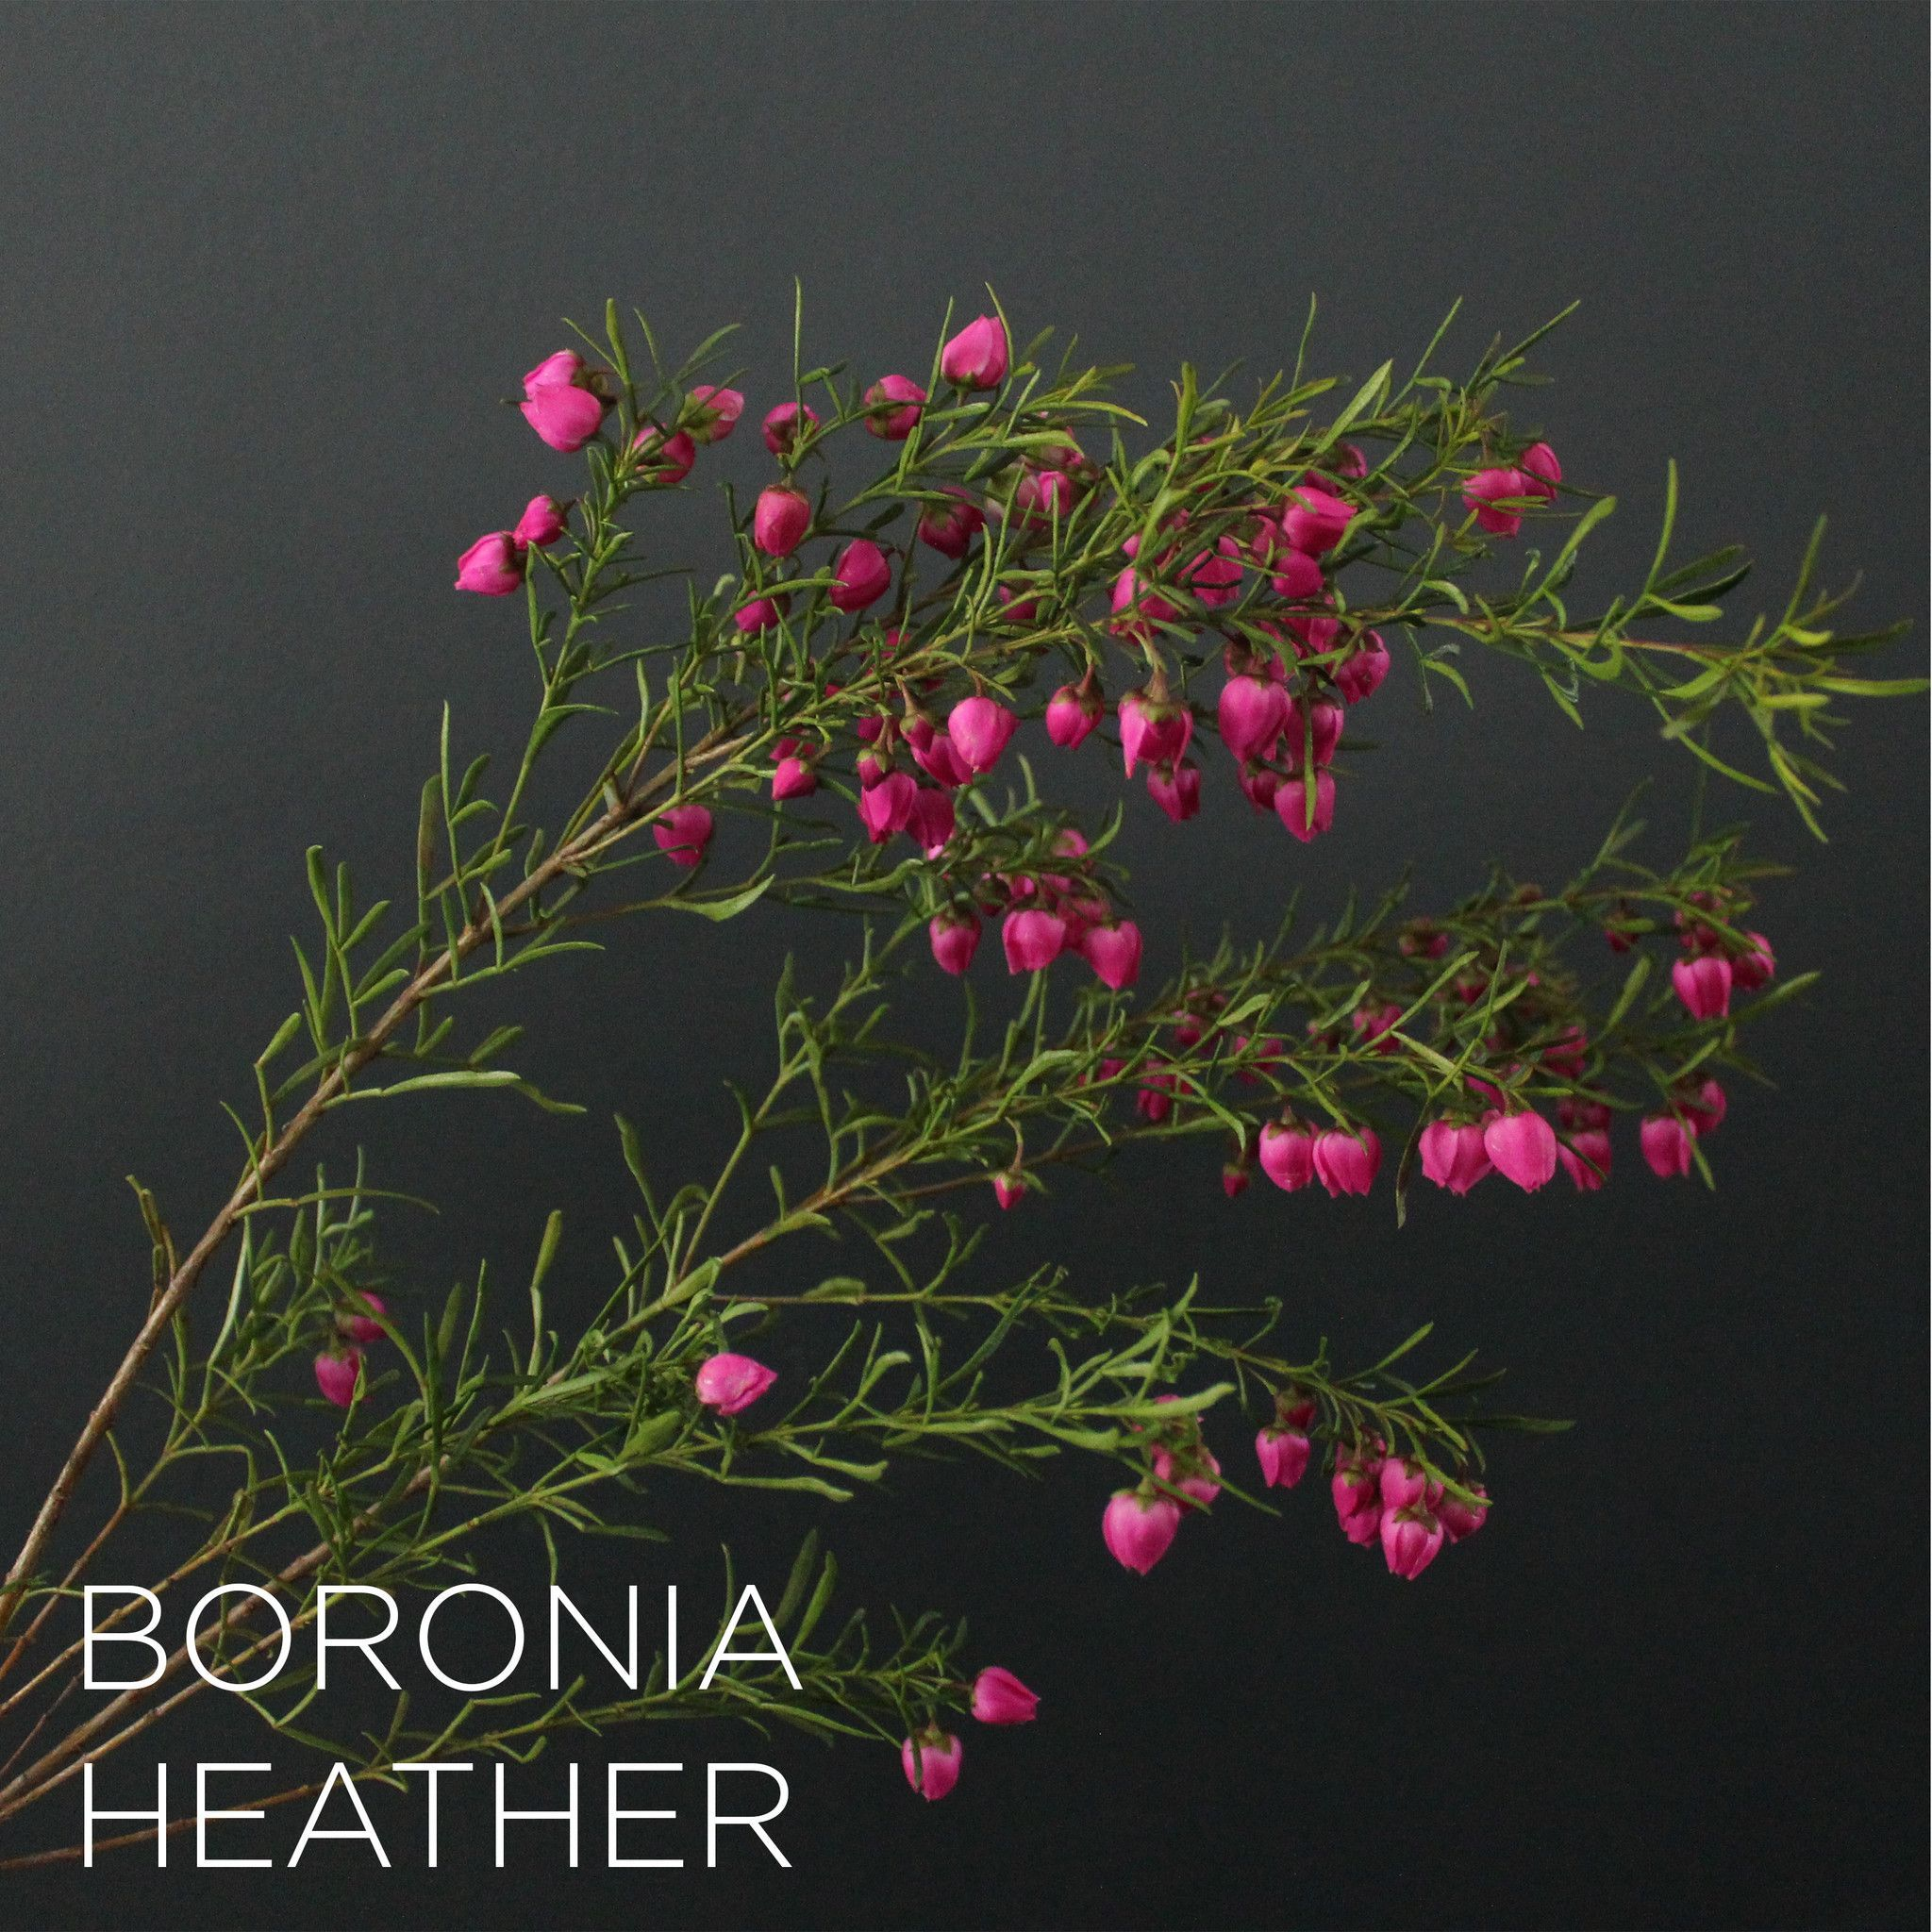 Boronia Heather Flower Guide Flower Names Flowers Photography